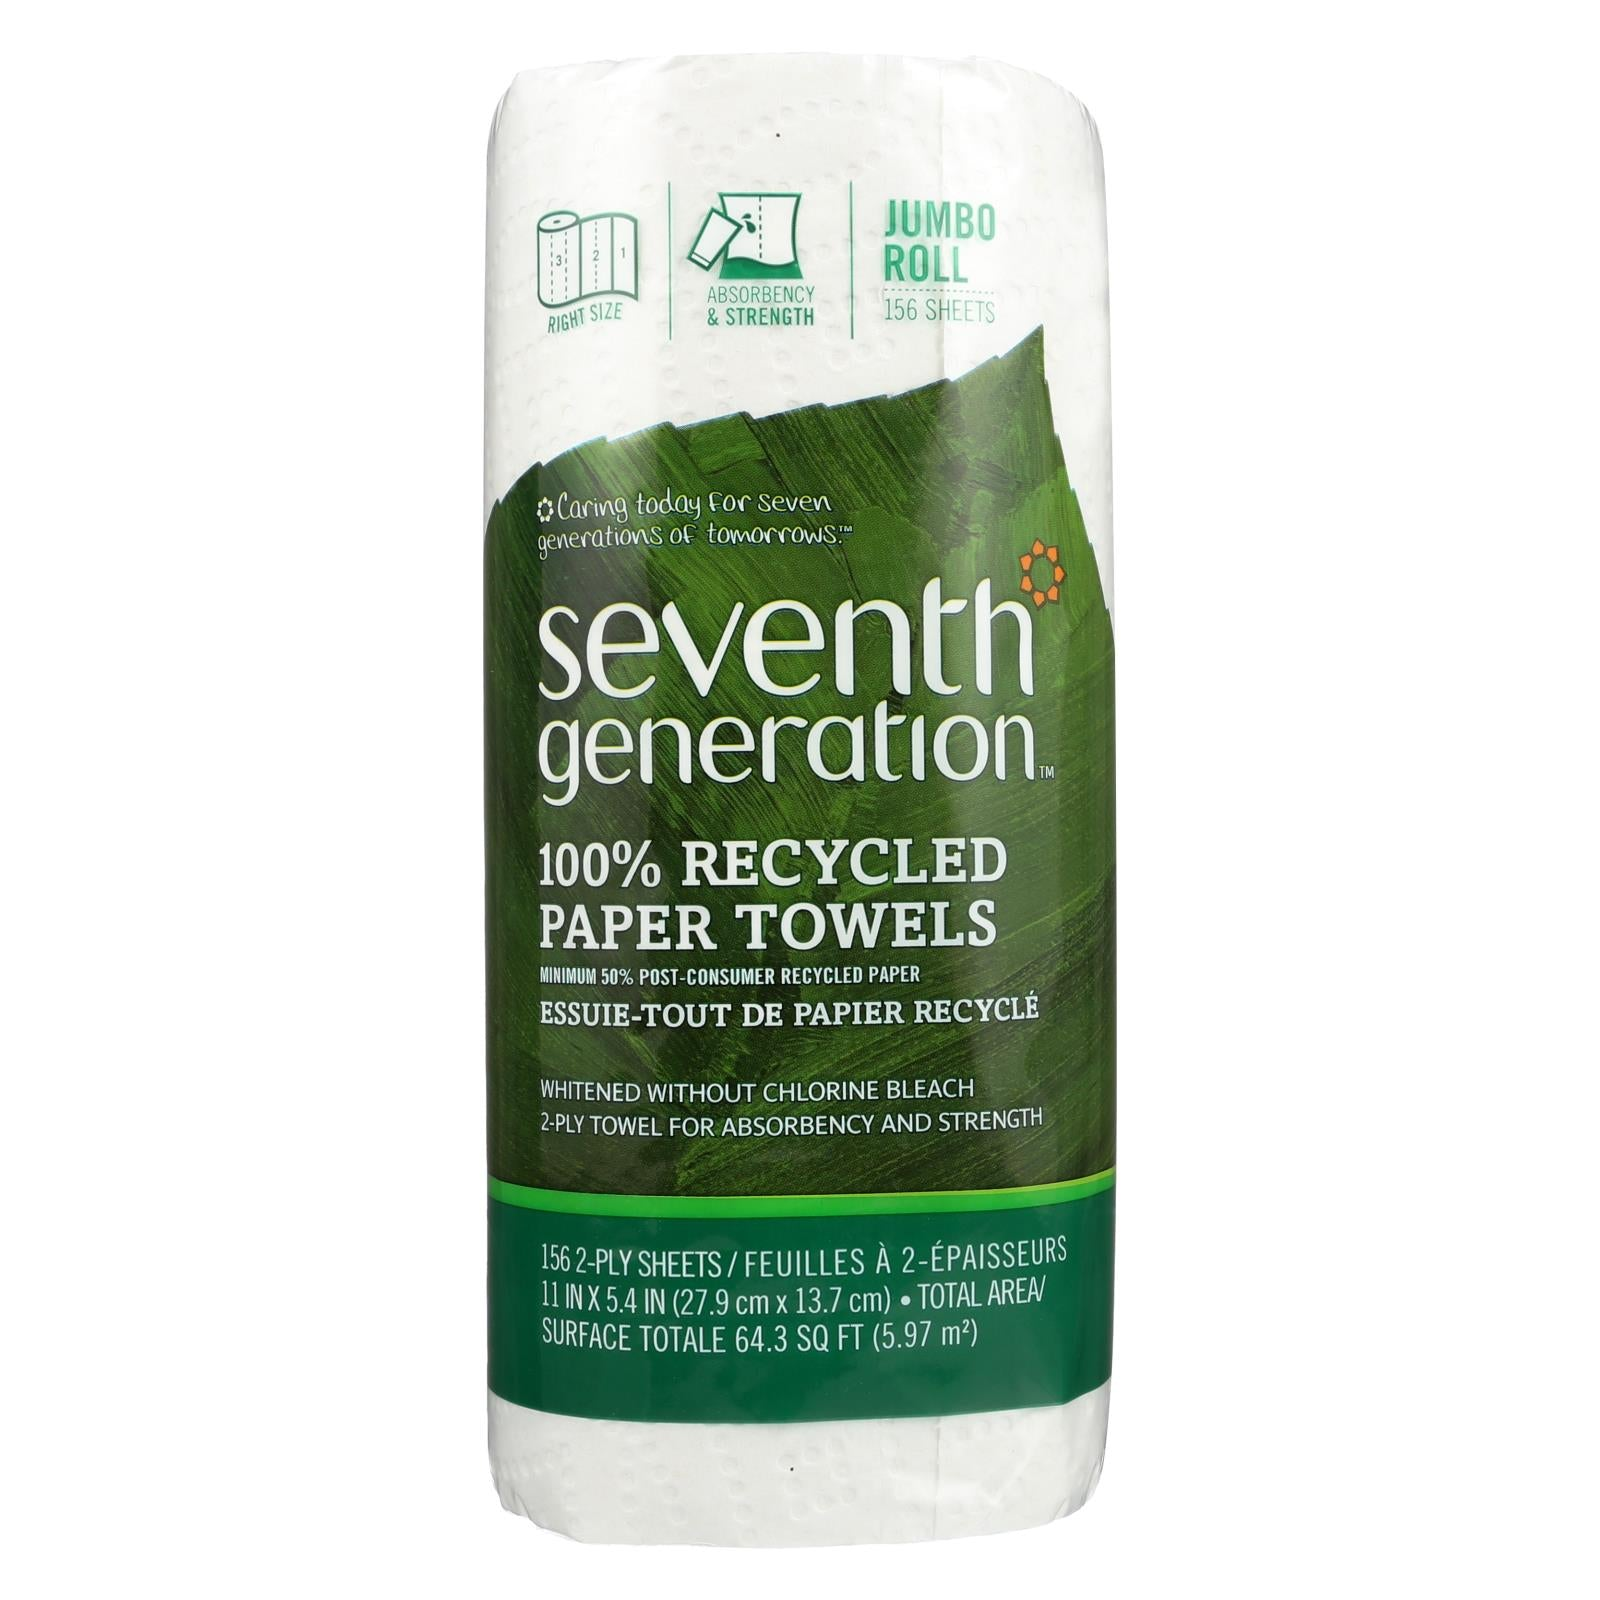 Buy Seventh Generation Paper Towels - White - 156 sheet roll - Case of 24 - Paper Towels from Veroeco.com